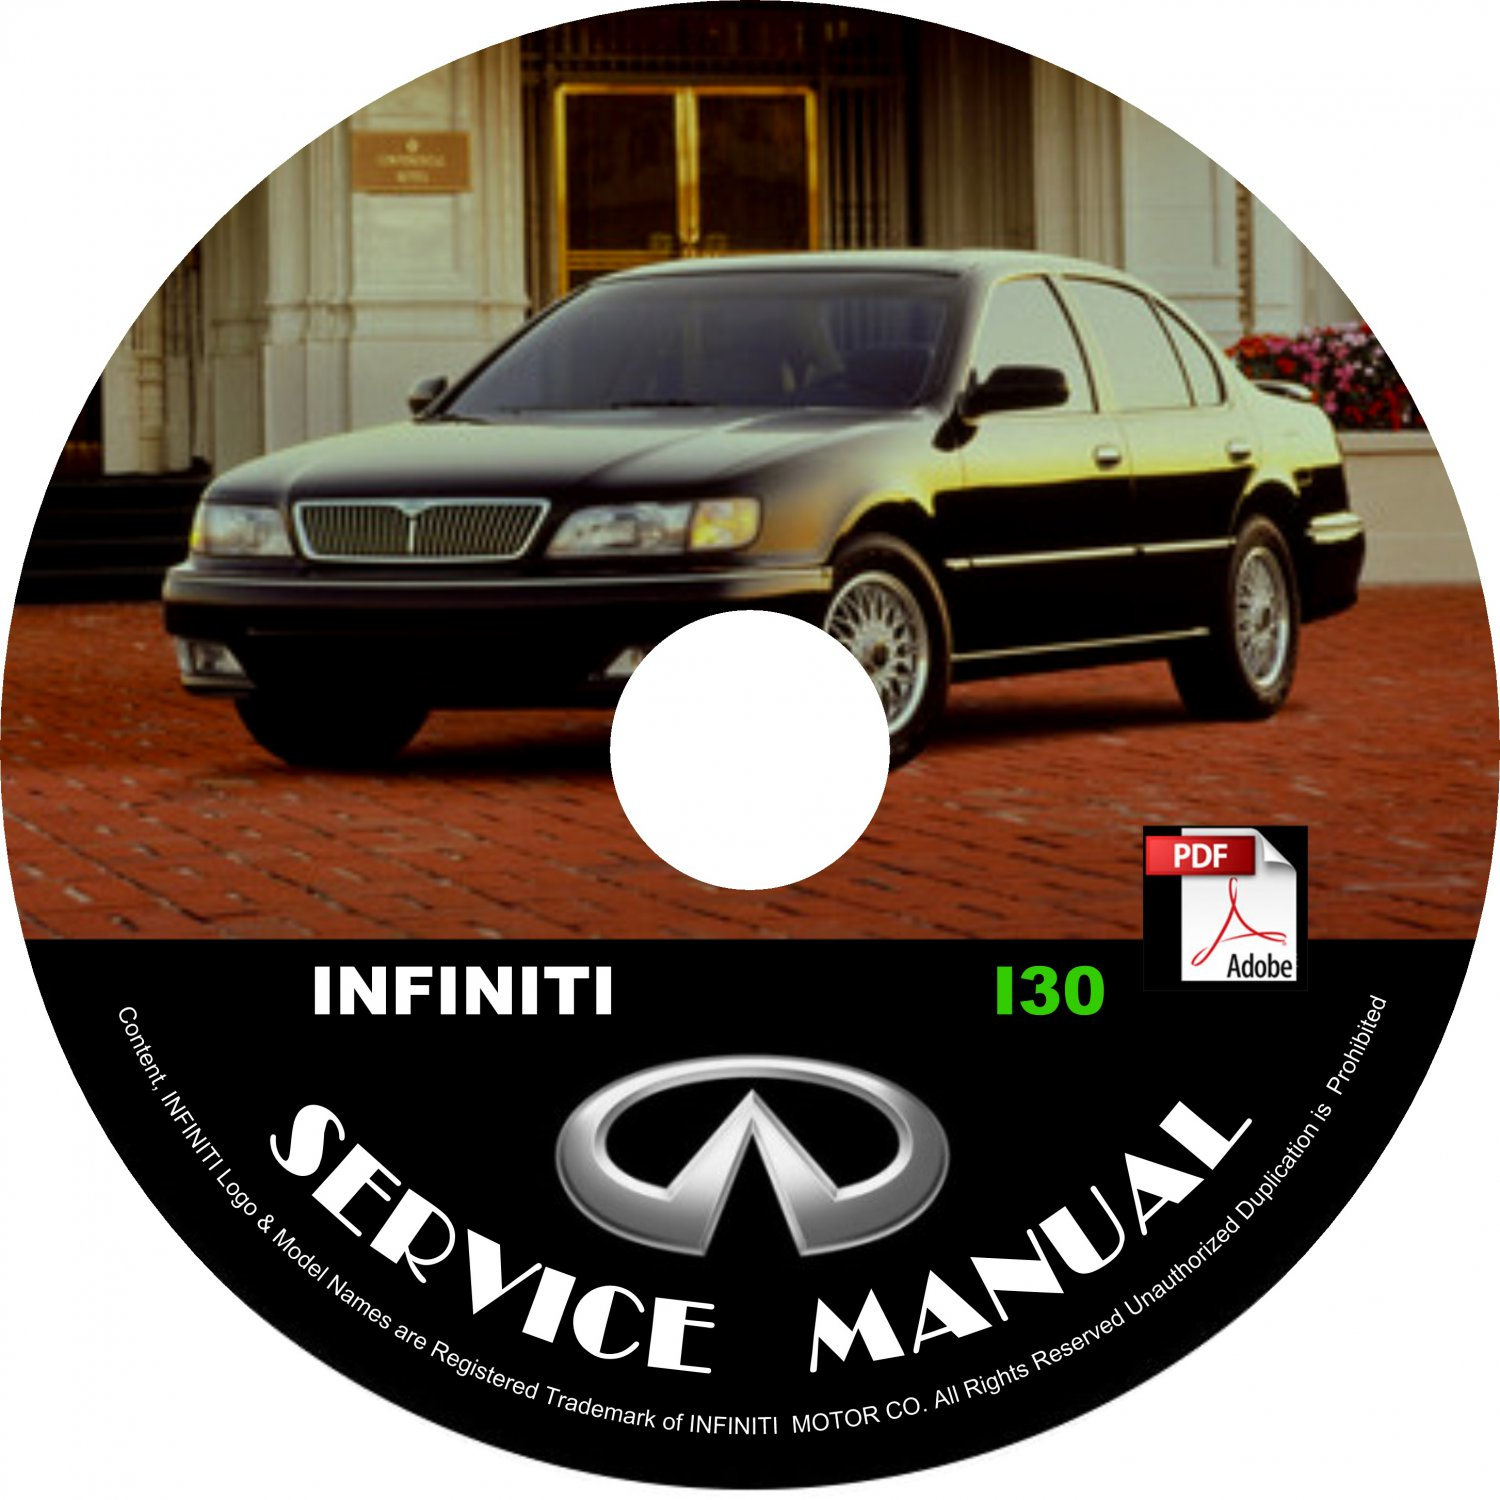 1996 96 Infiniti i30 Factory OEM Service Repair Shop Manual on CD Fix Repair Rebuild '96 Workshop